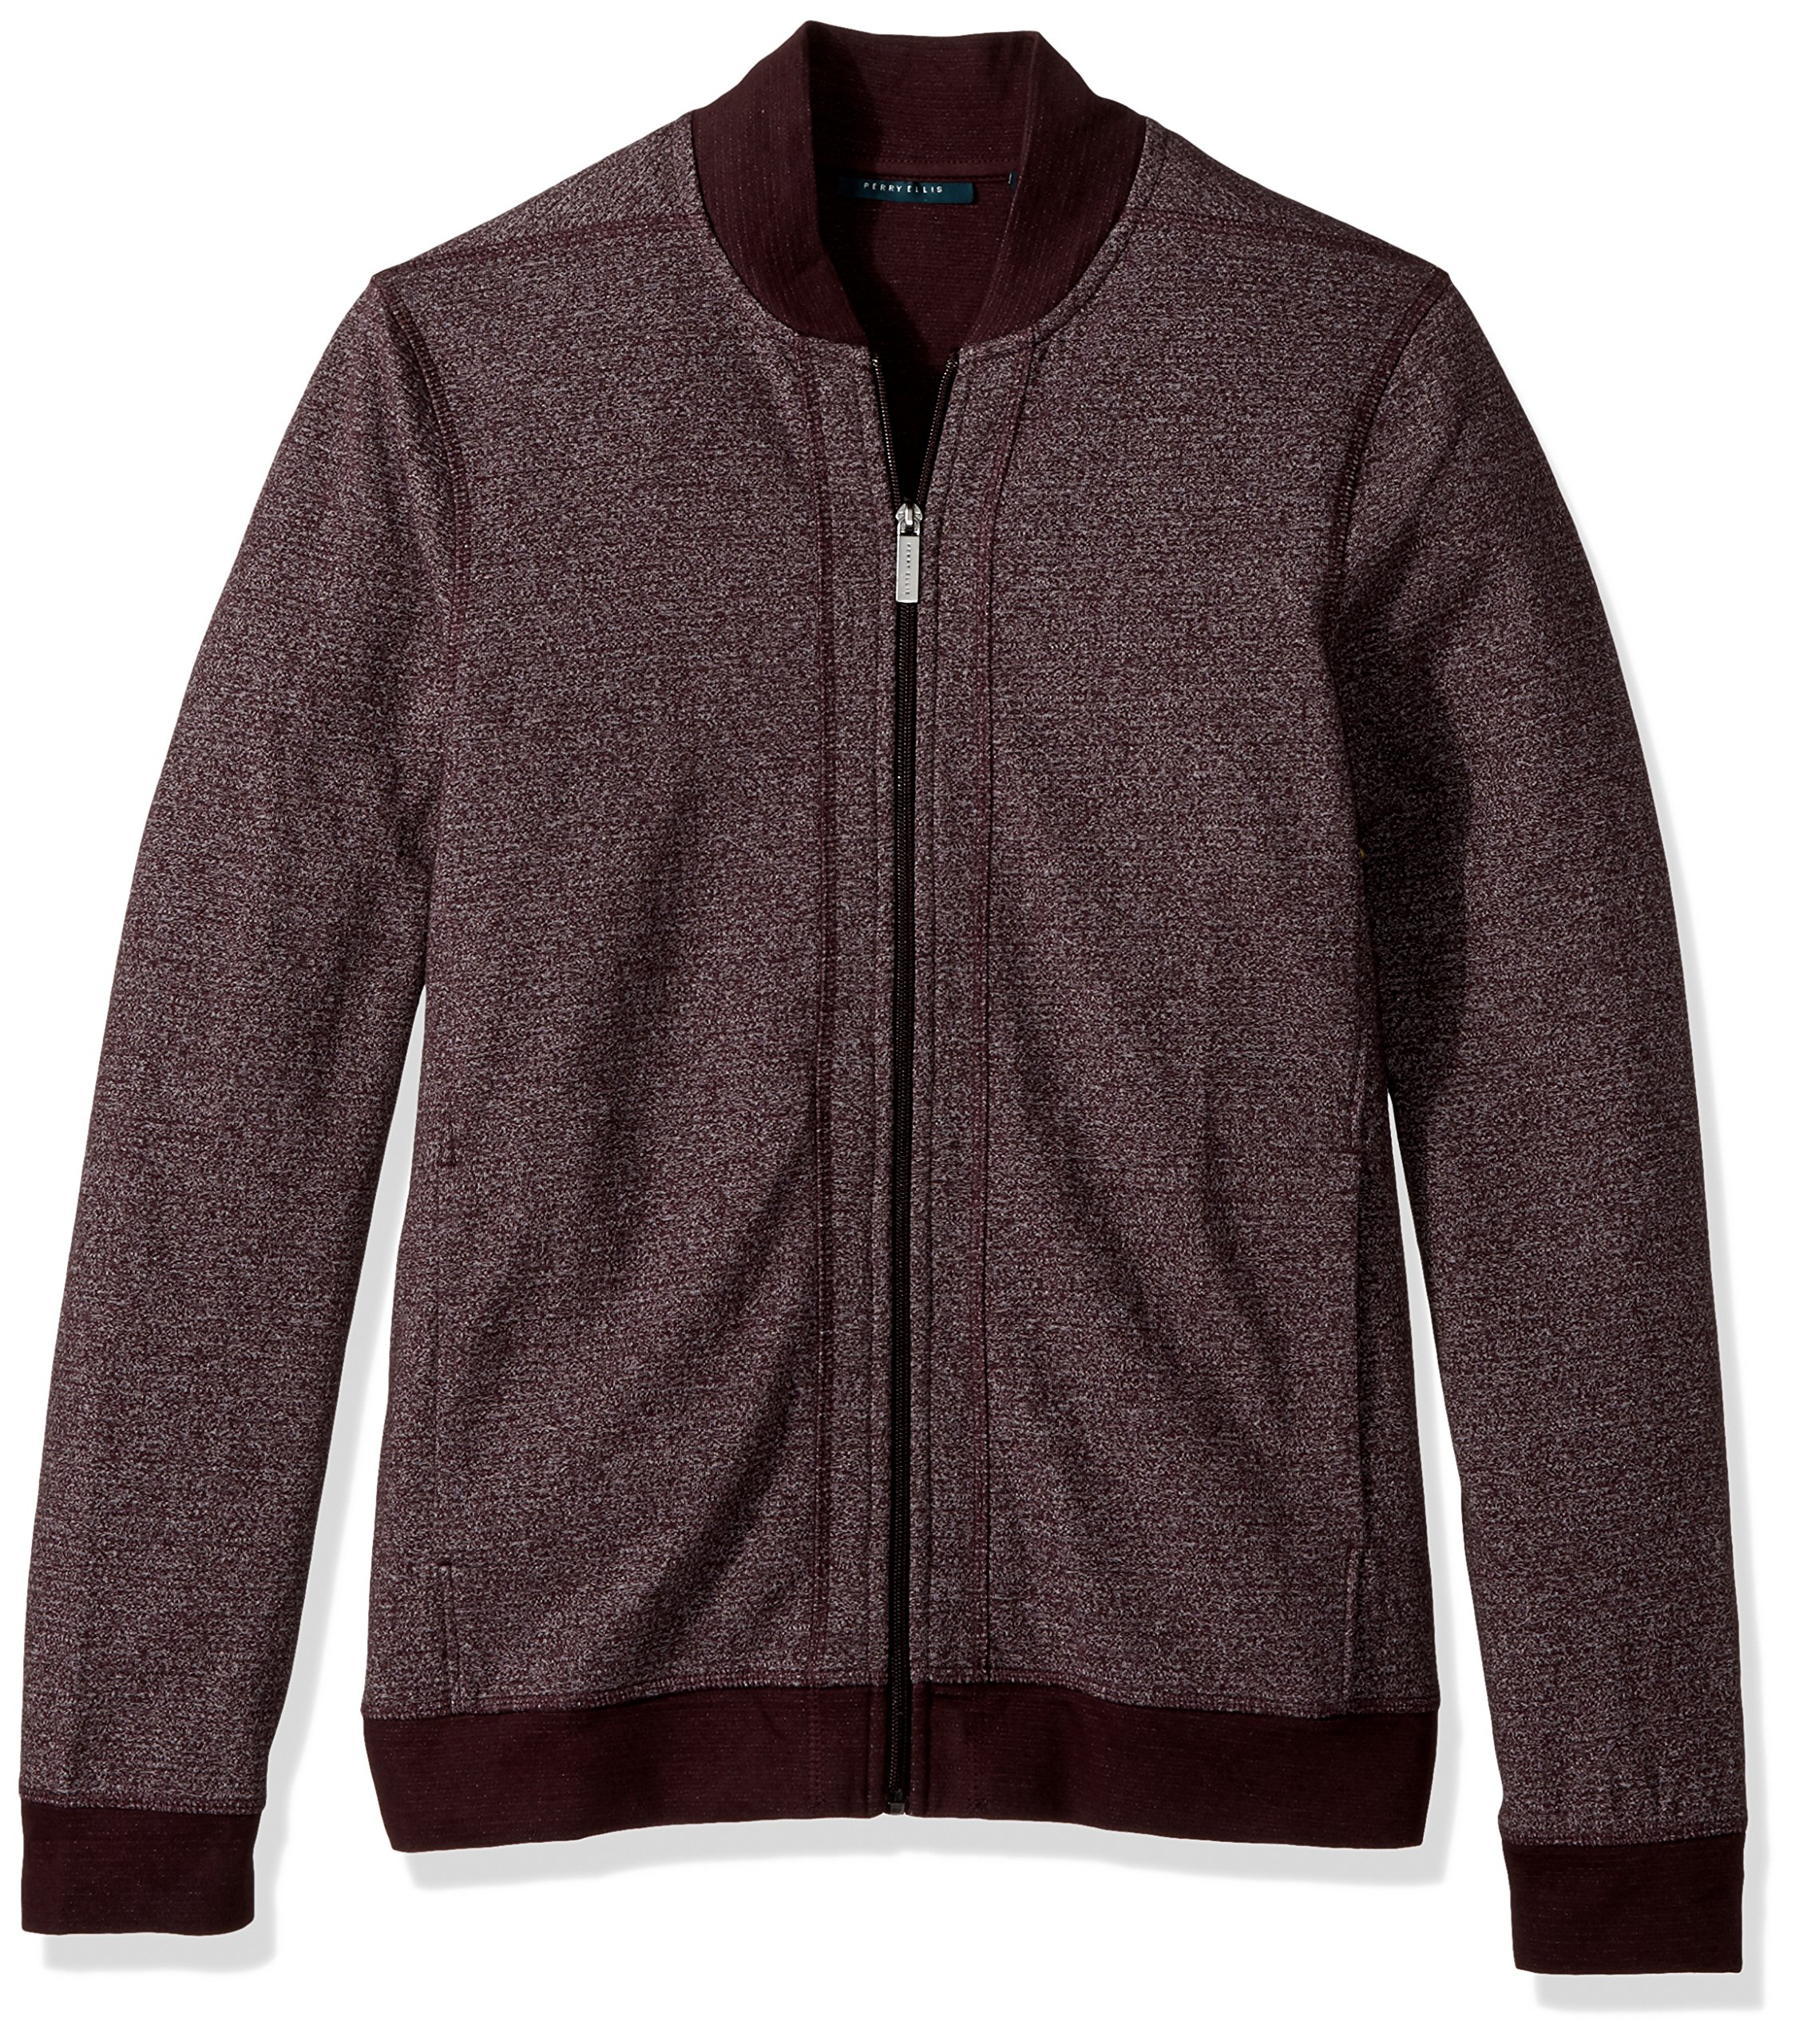 Perry Ellis Men's Texture Bomber Knit Jacket, Port, Large by Perry Ellis